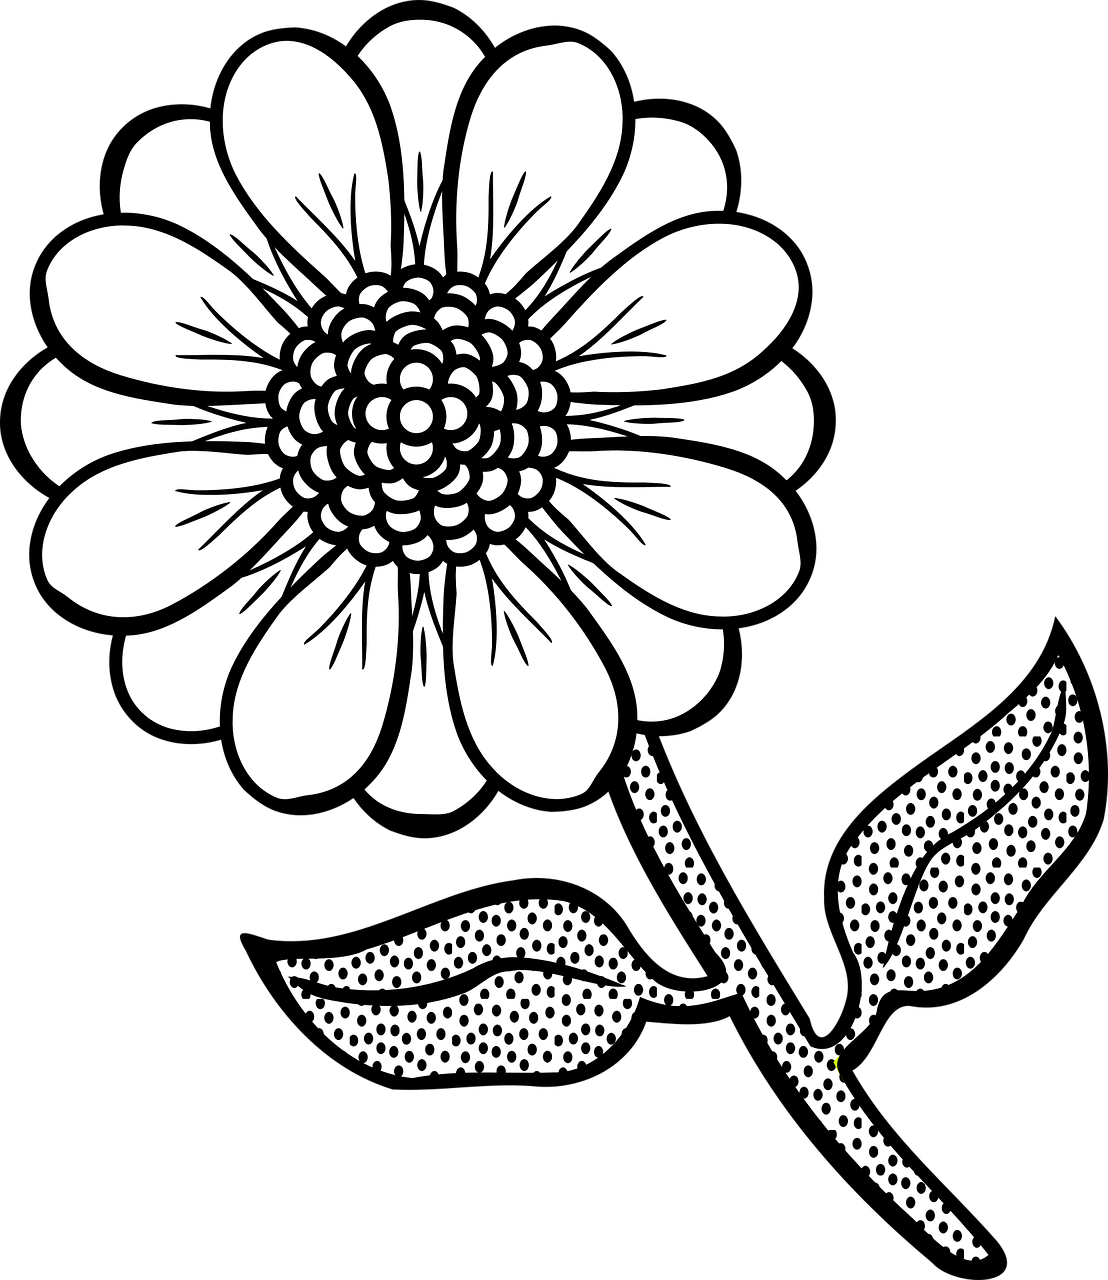 Free printable pictures of flowers picture library stock Free printable flower coloring pages: 16 pics - HOW-TO-DRAW in 1 minute picture library stock